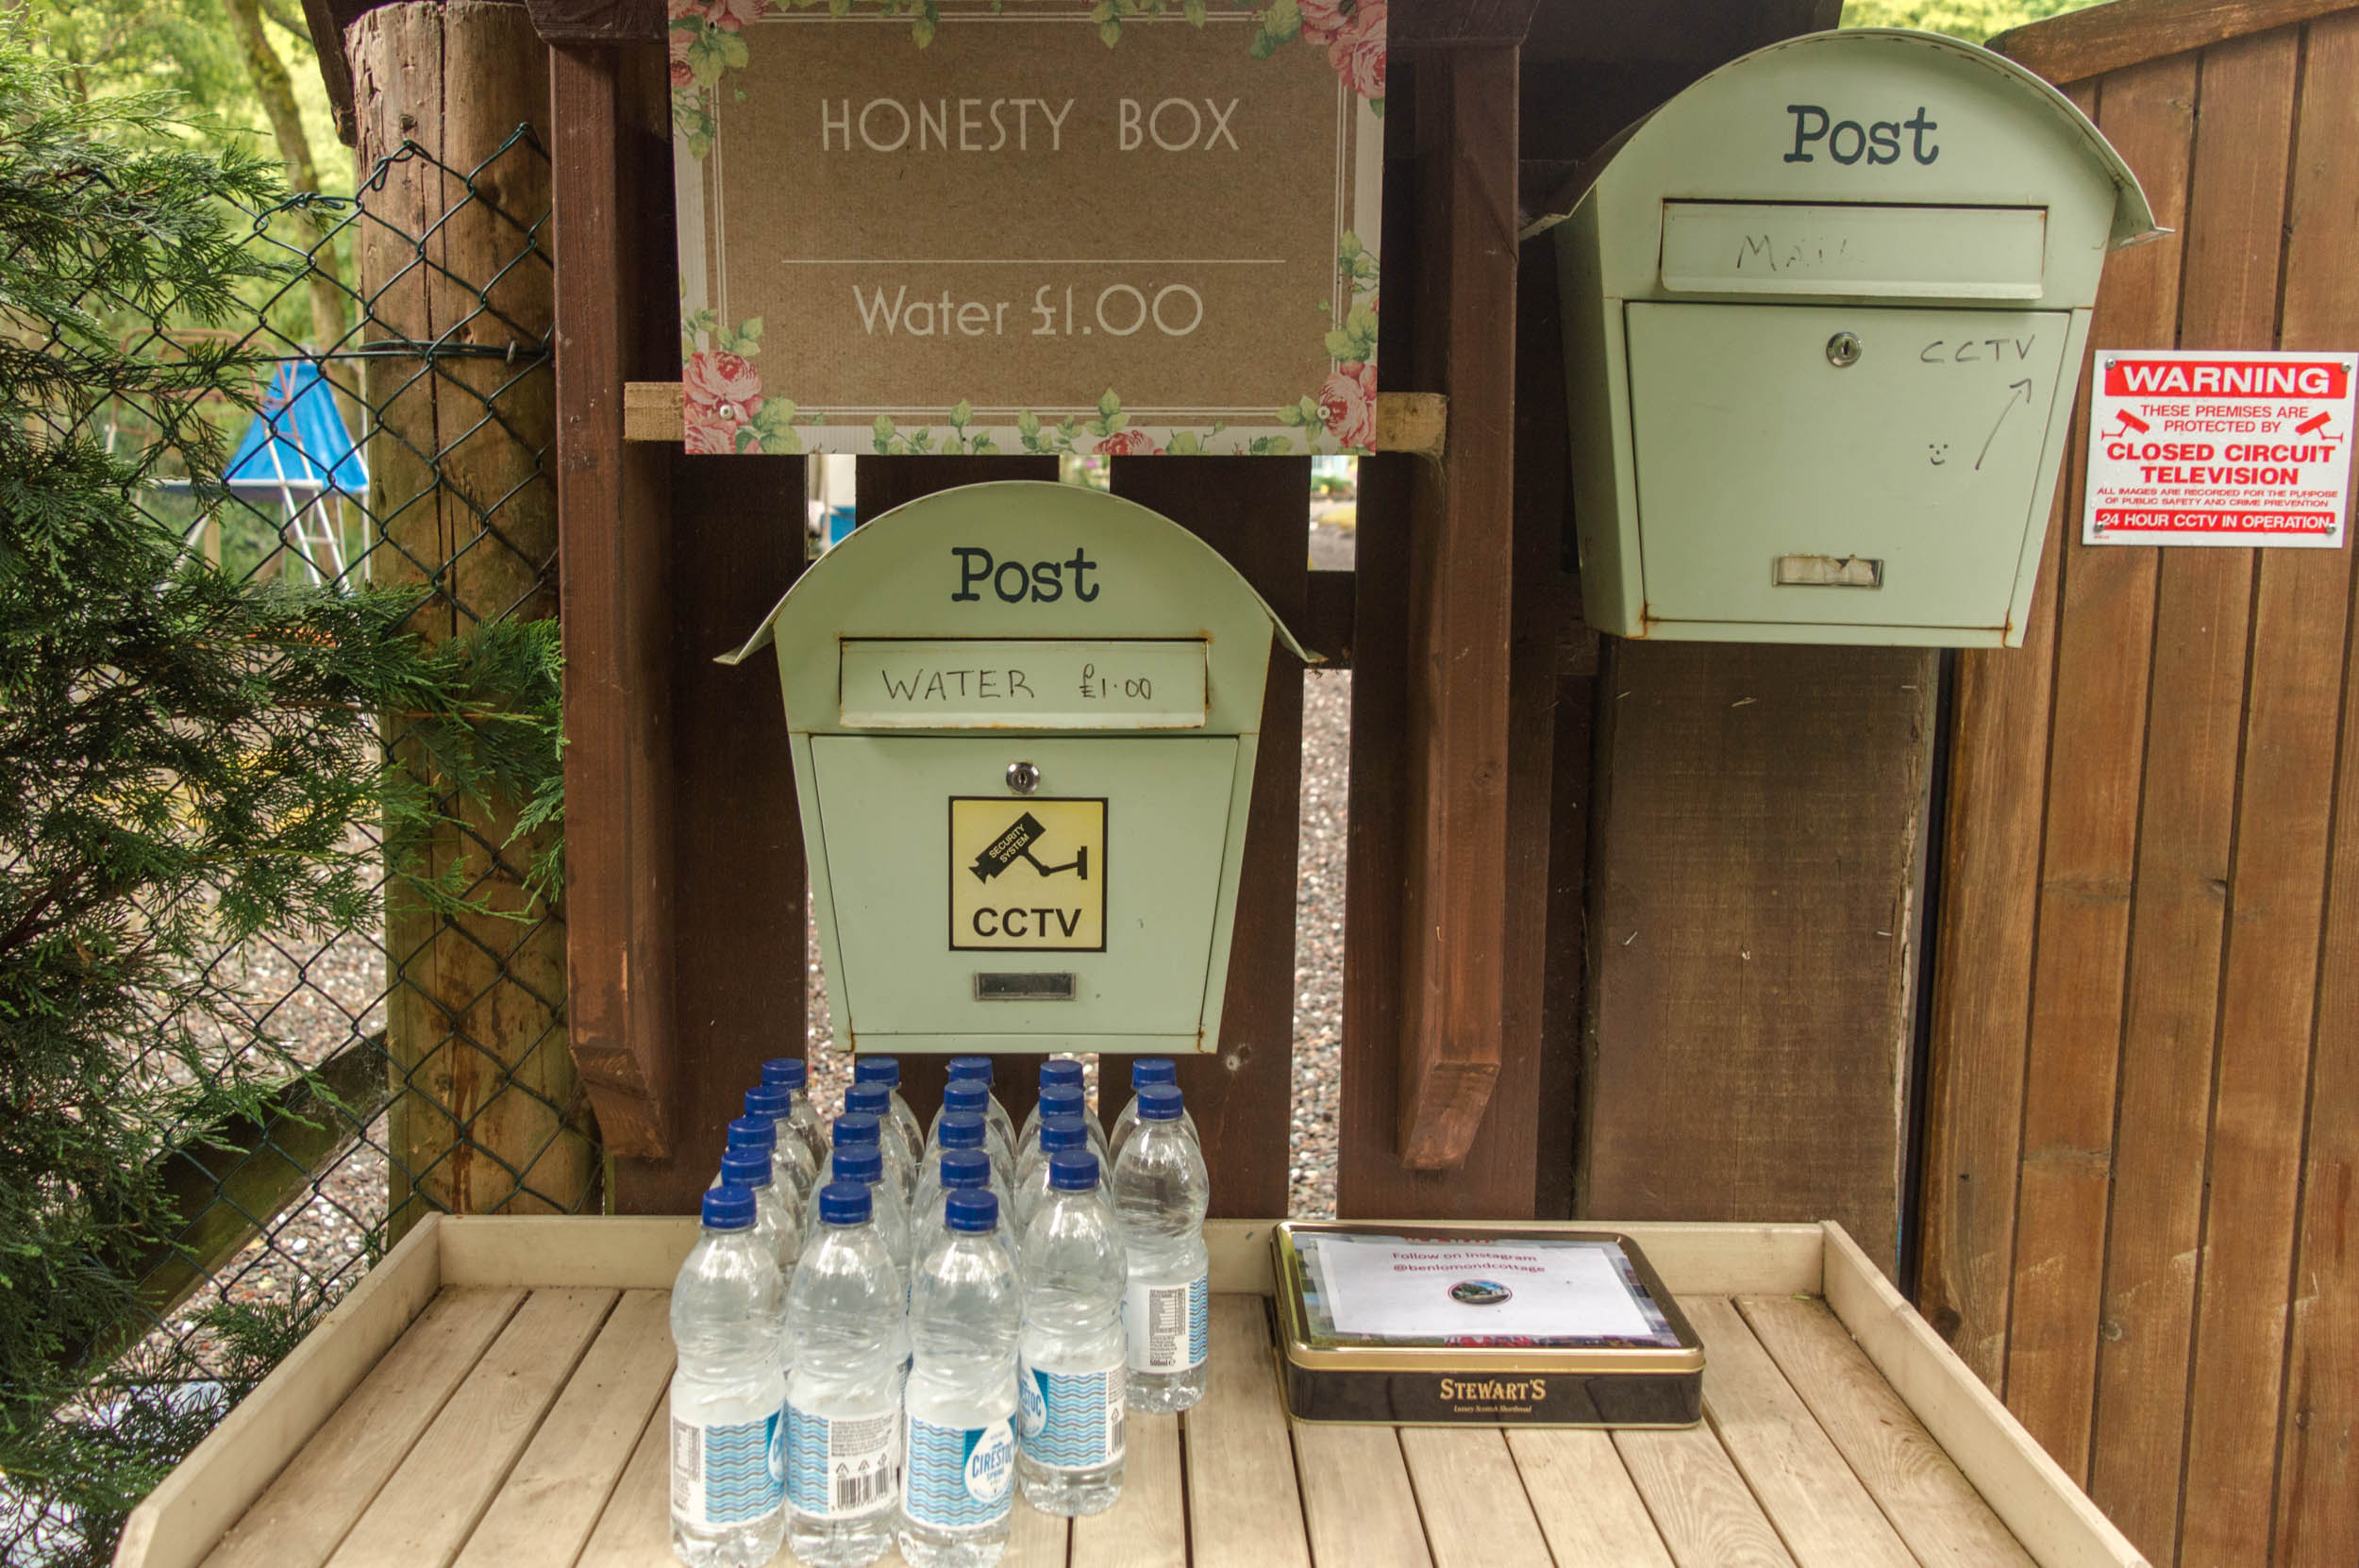 Honesty Box, Water at Rowardennan